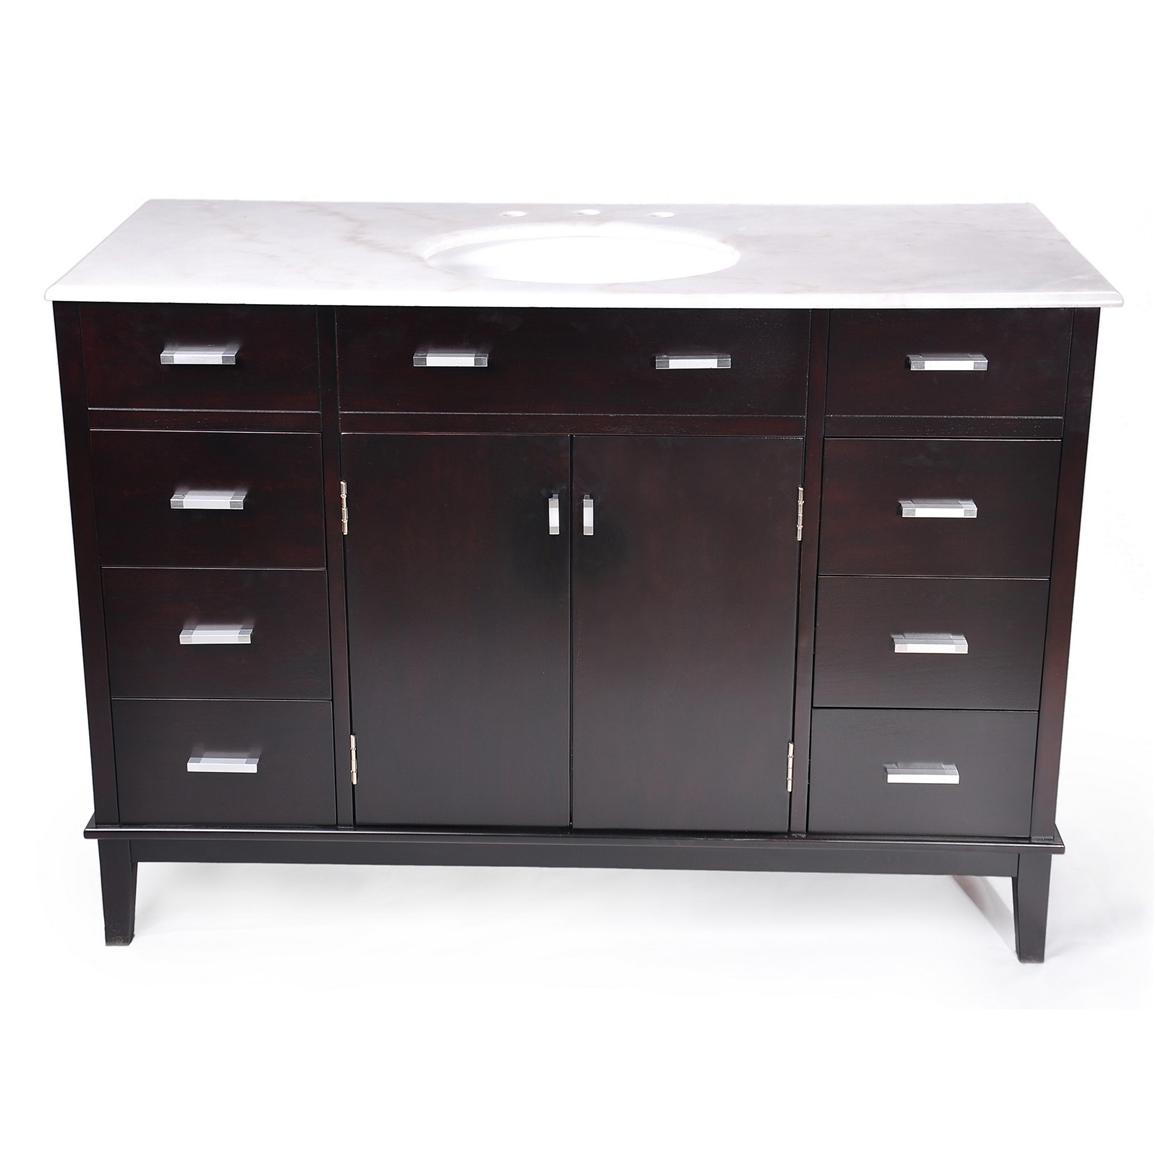 Simpli Home™ 48 inch Urban Loft Bathroom Vanity with Marble Top and Sink